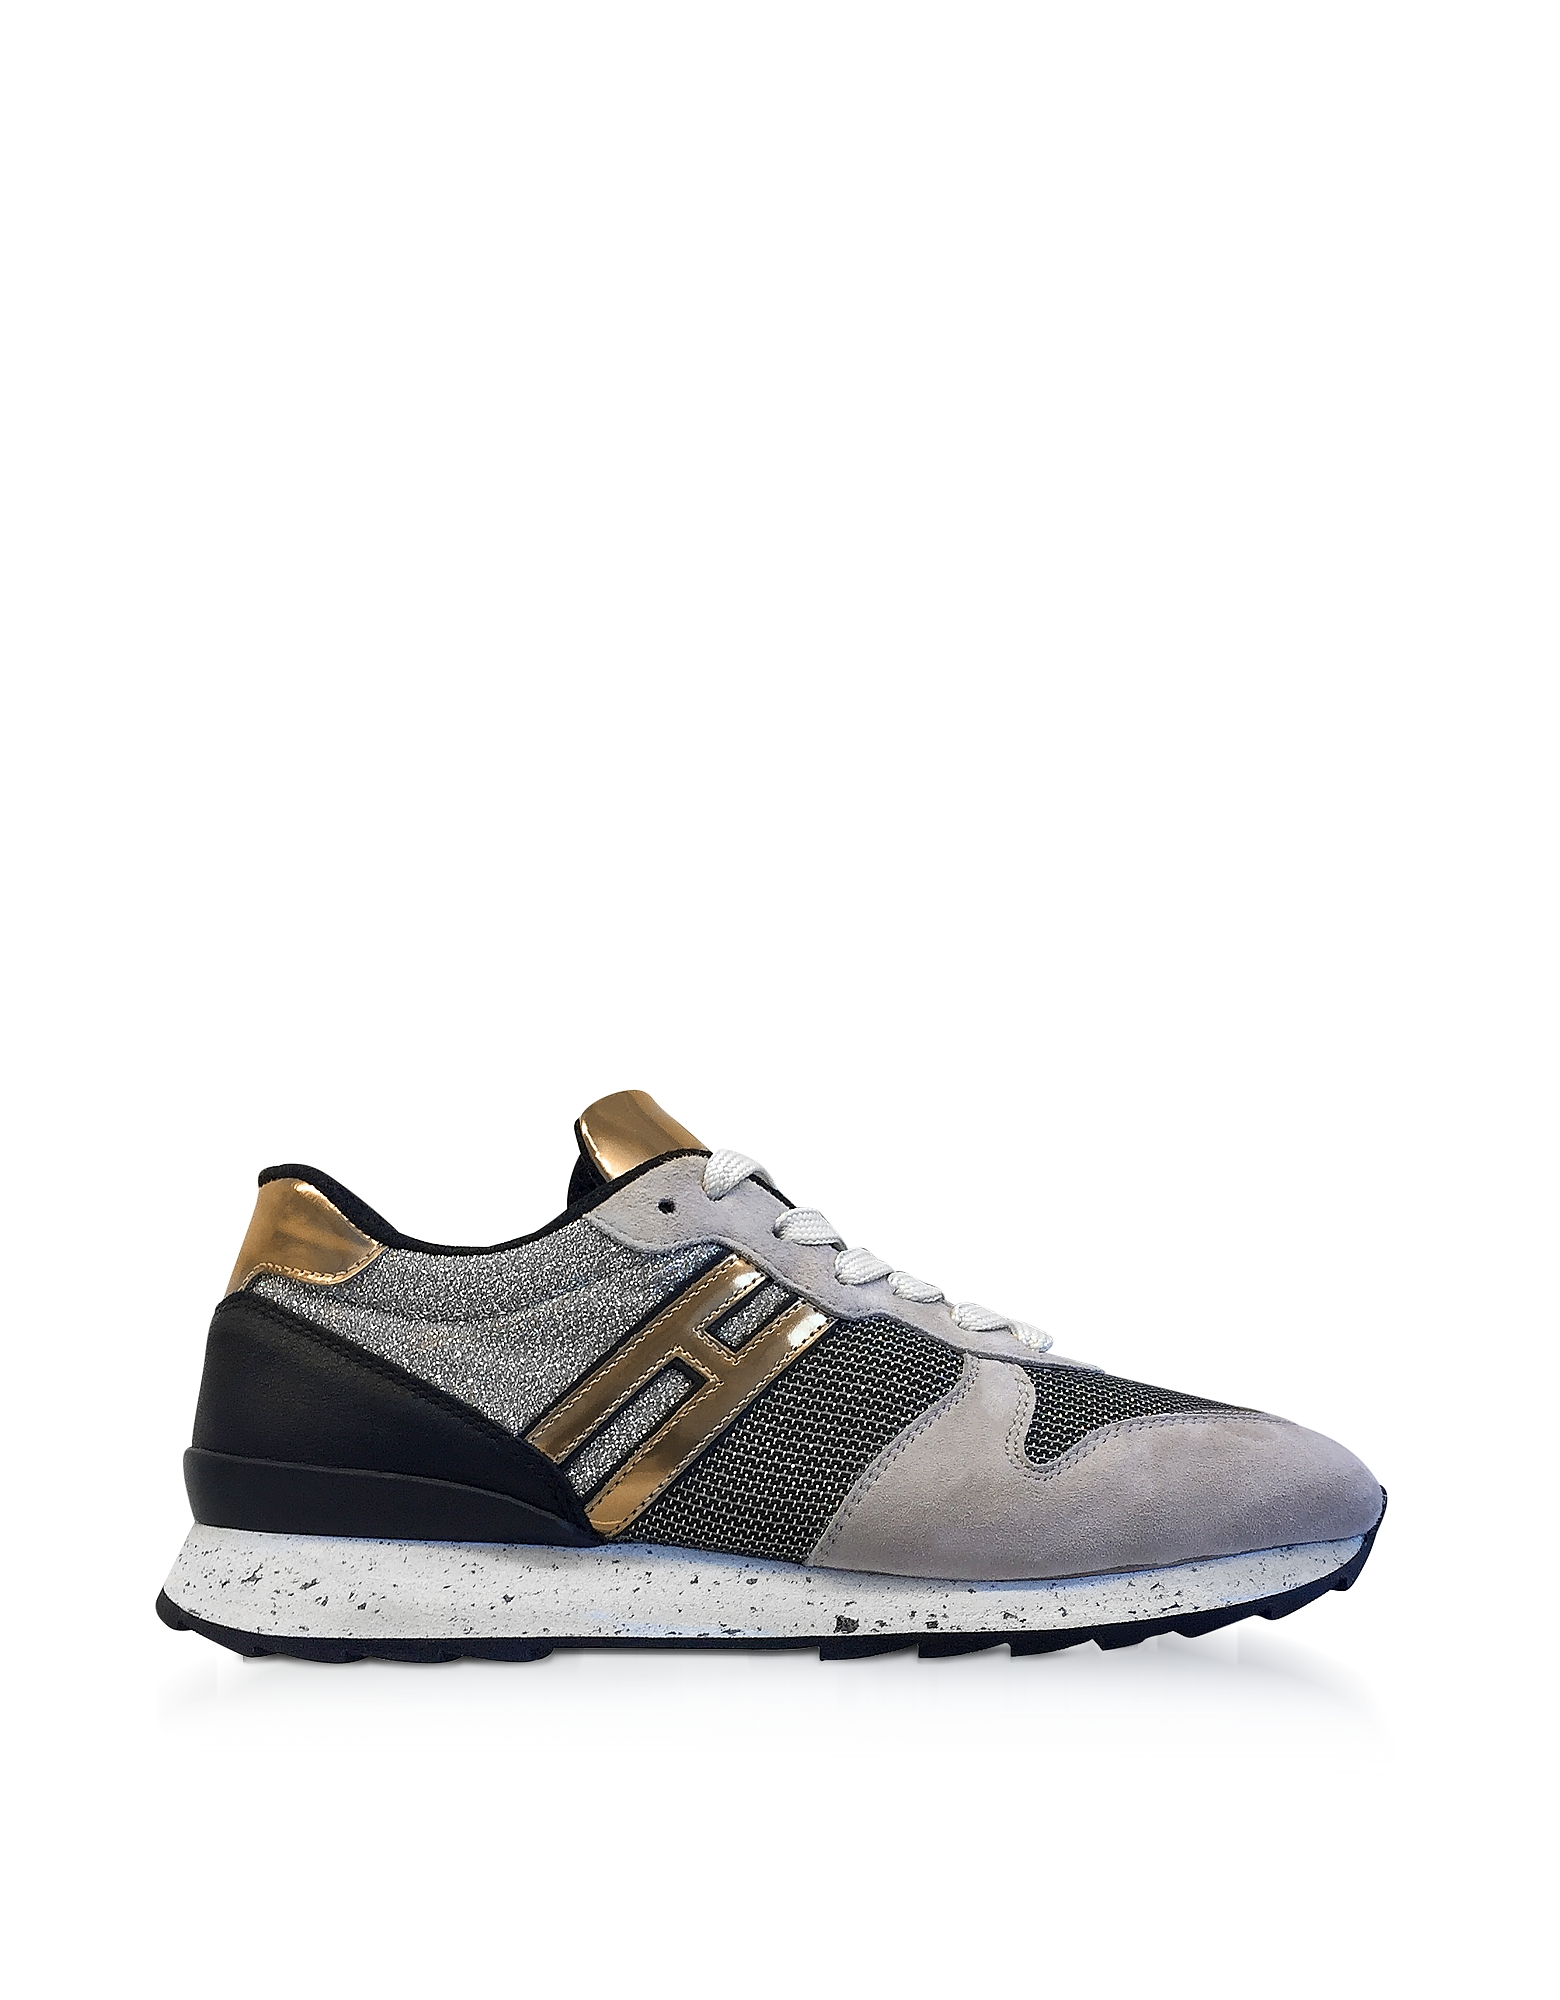 Hogan Shoes, R261 Lurex, Suede and Metallic Leather Sneakers